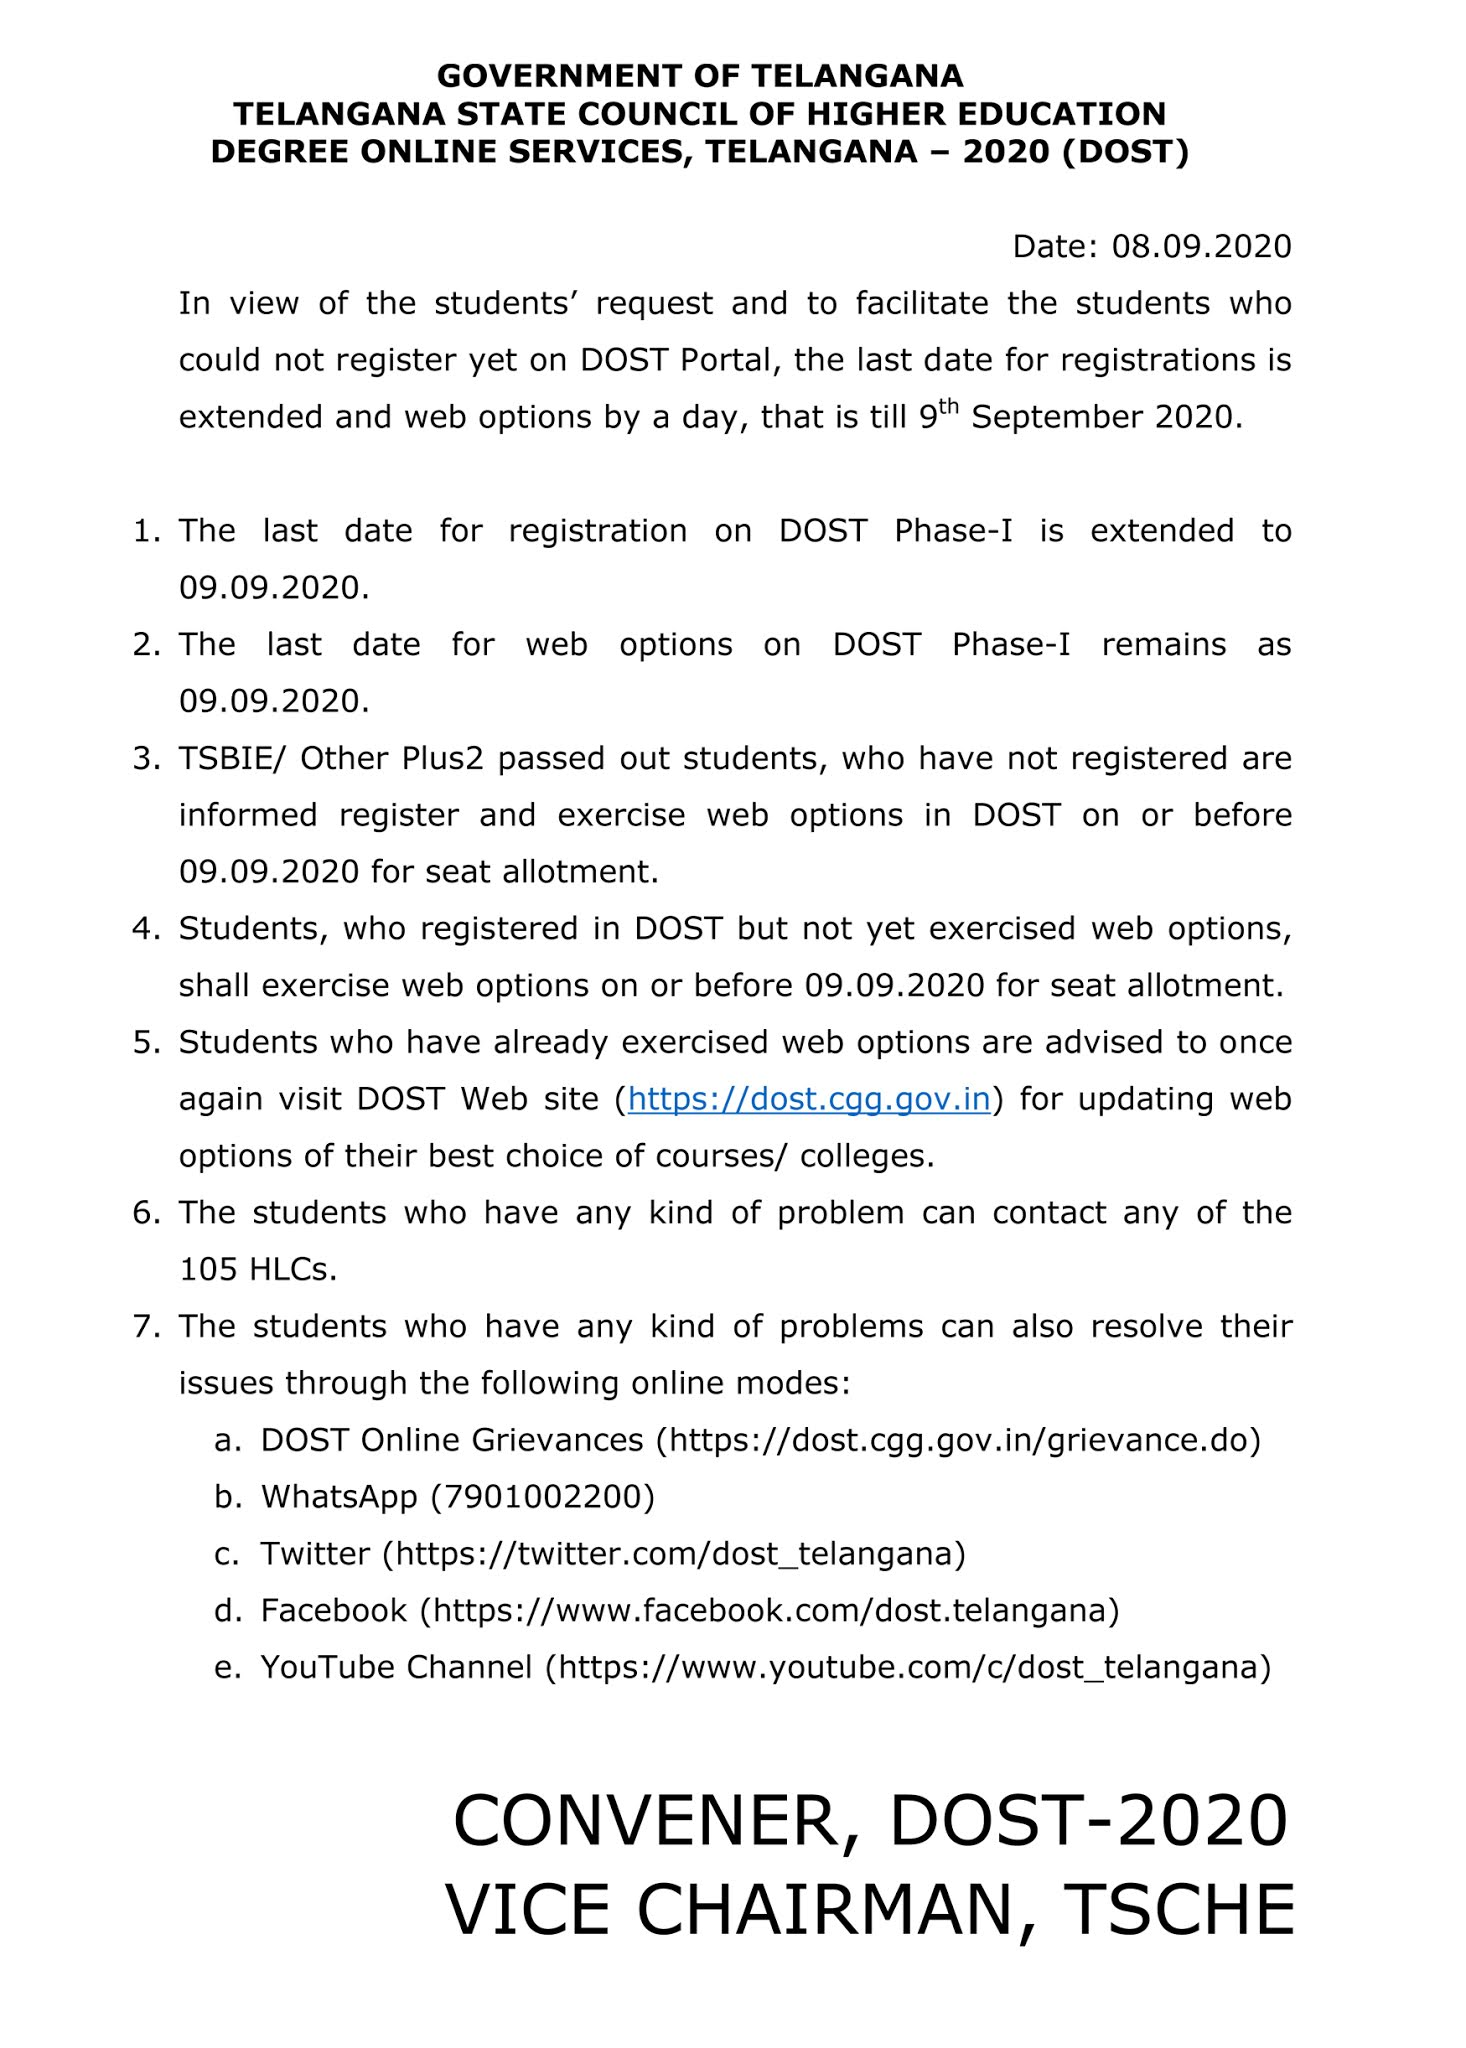 DOST Phase 1 Last Date Registration & Web Option Extended Notification